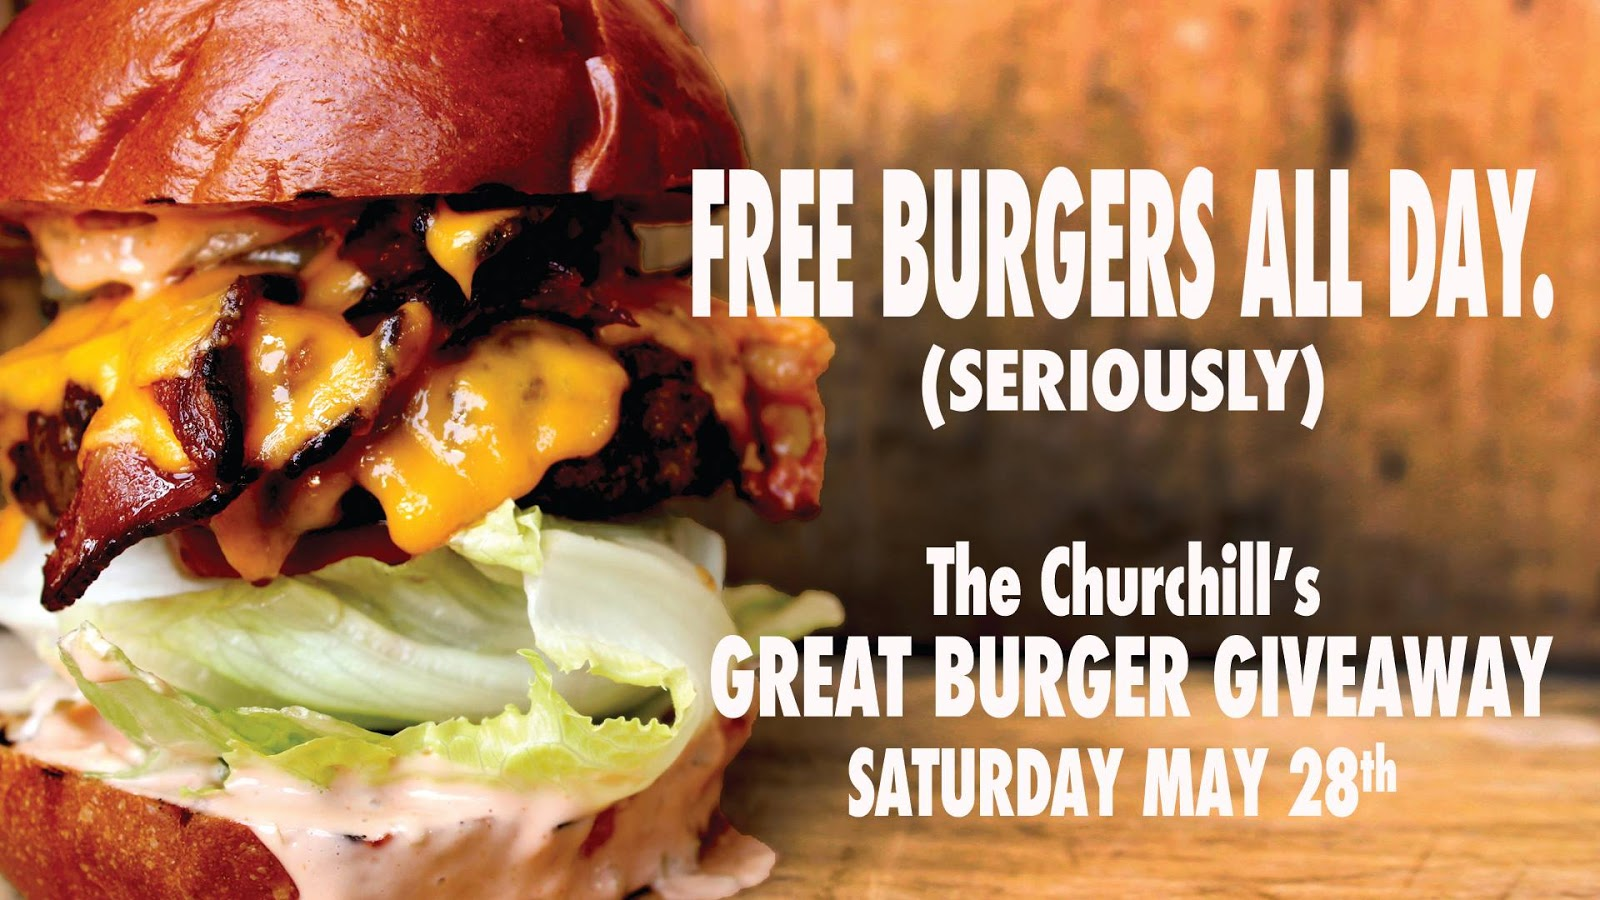 THE CHURCHILL'S  GREAT BURGER GIVEAWAY FOR #NATIONALBURGERDAY ON MAY 28!